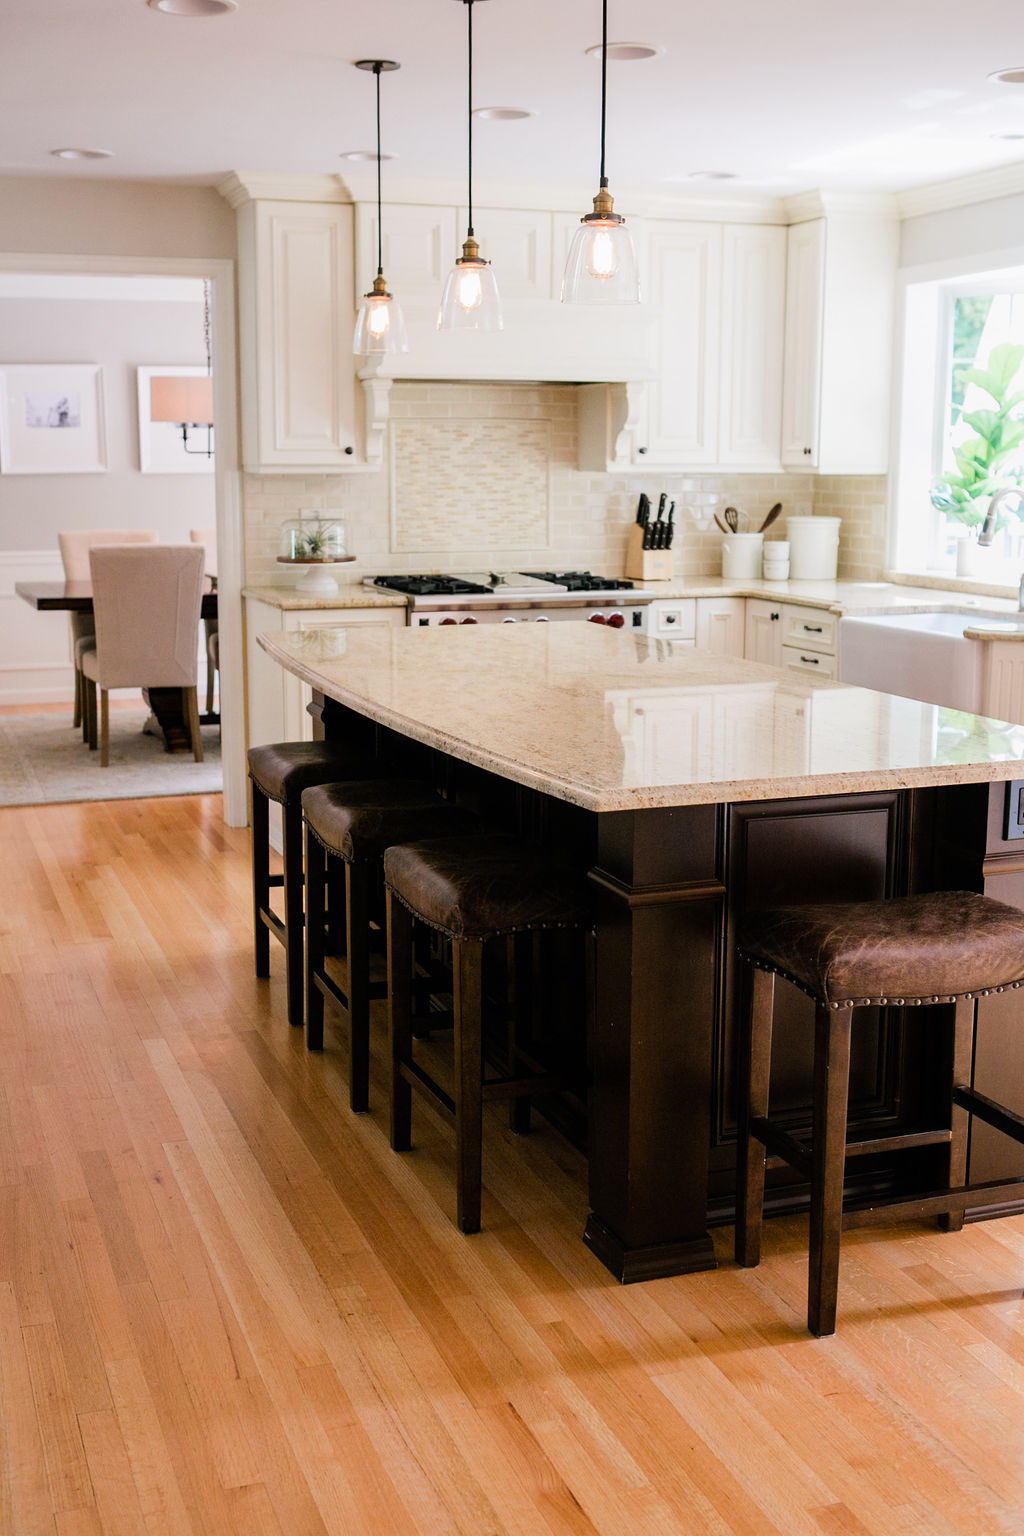 Large kitchen island with granite countertops and restoration hardware pendants.